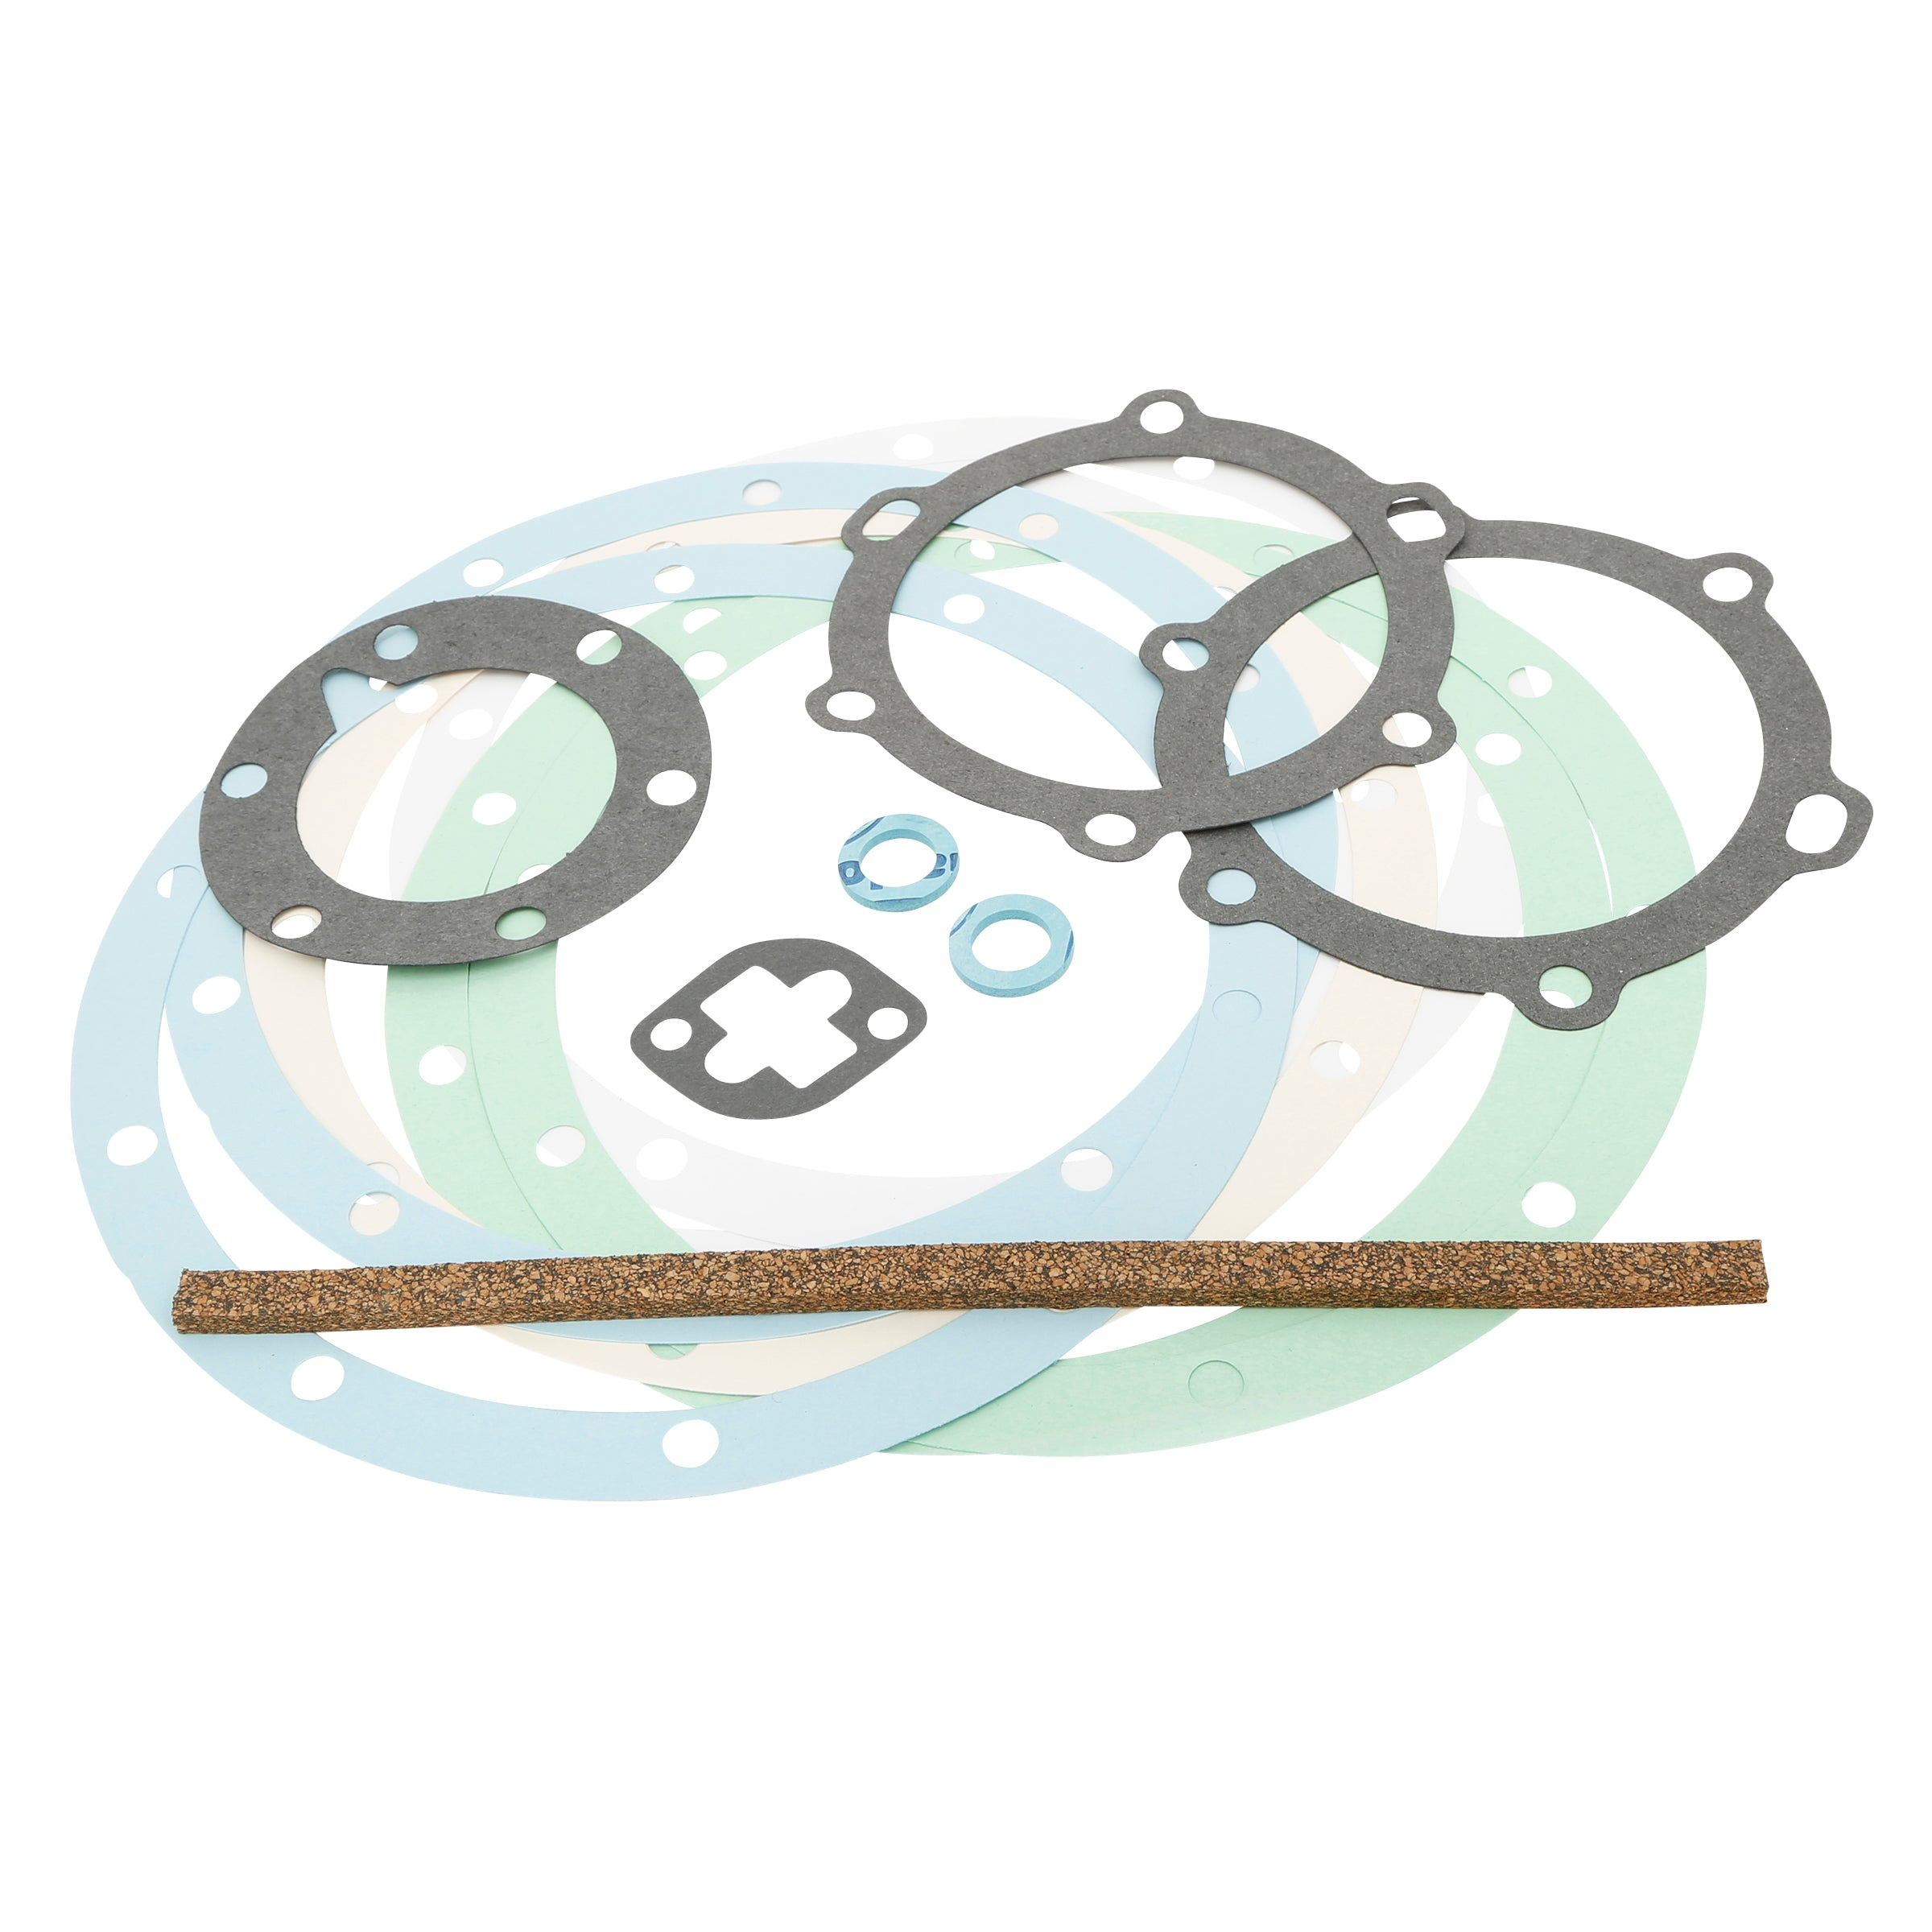 Rear Axle and U-Joint Gasket Set • 1928-31